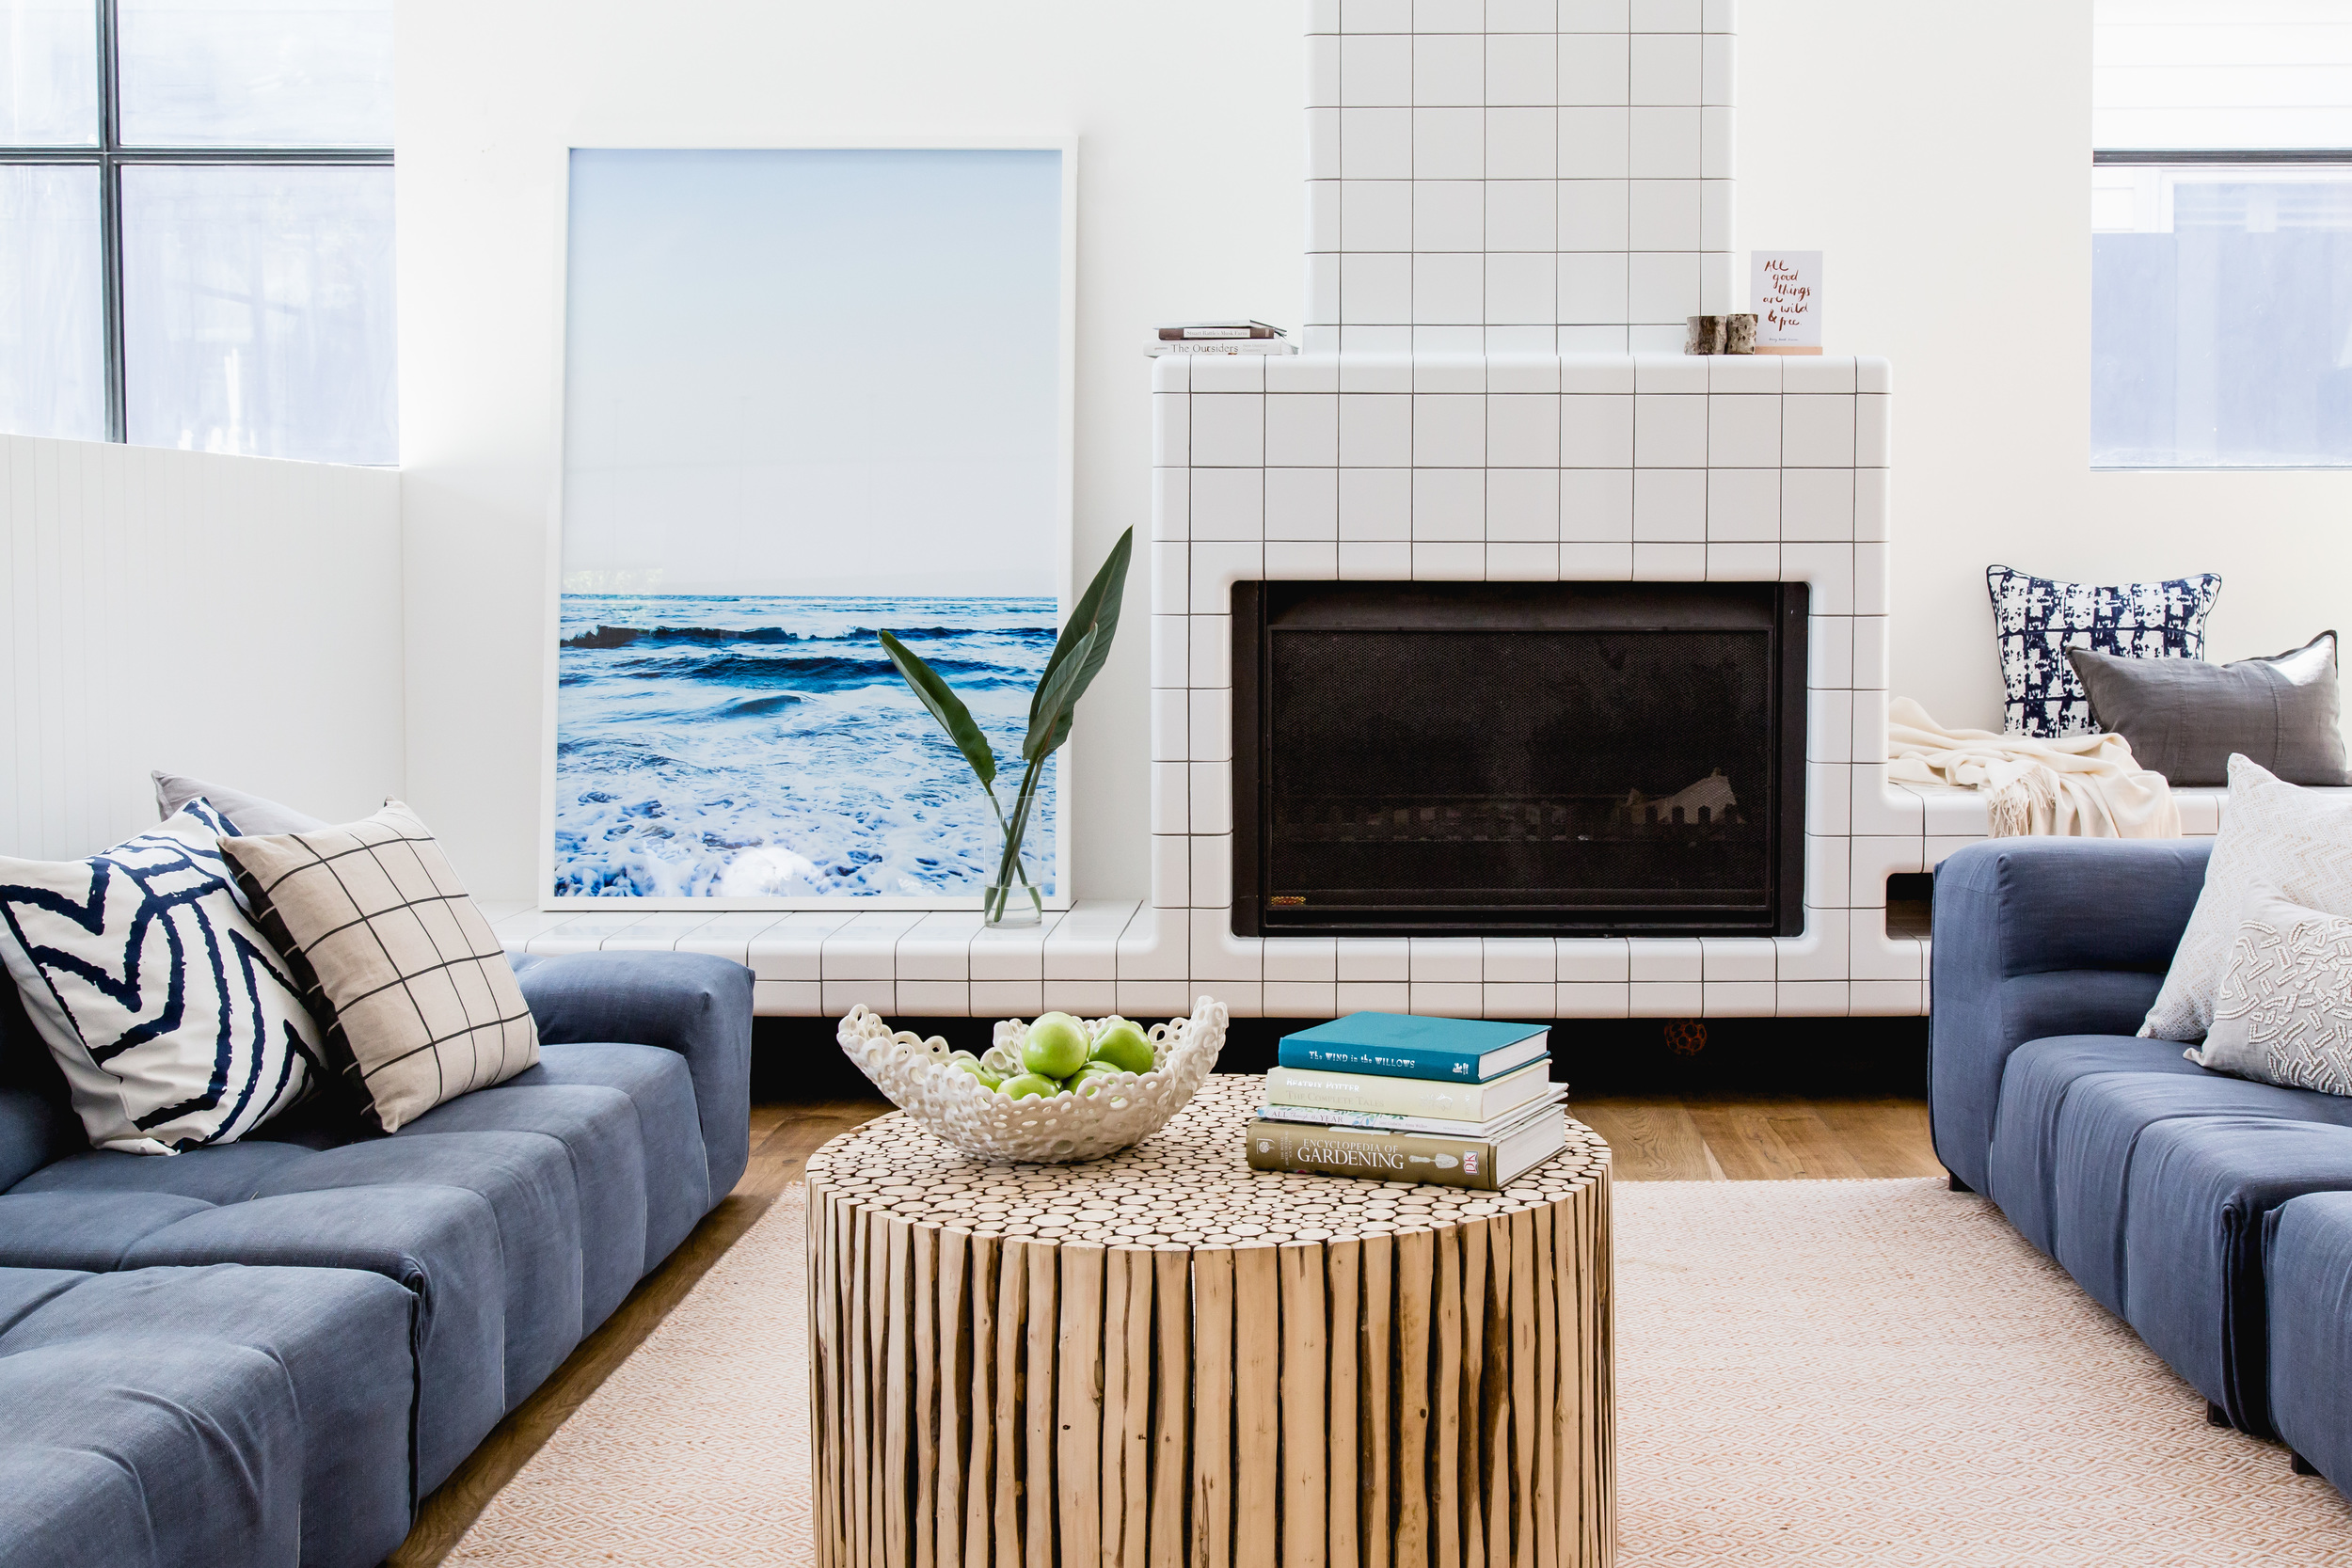 Styling by Seahaven Interiors